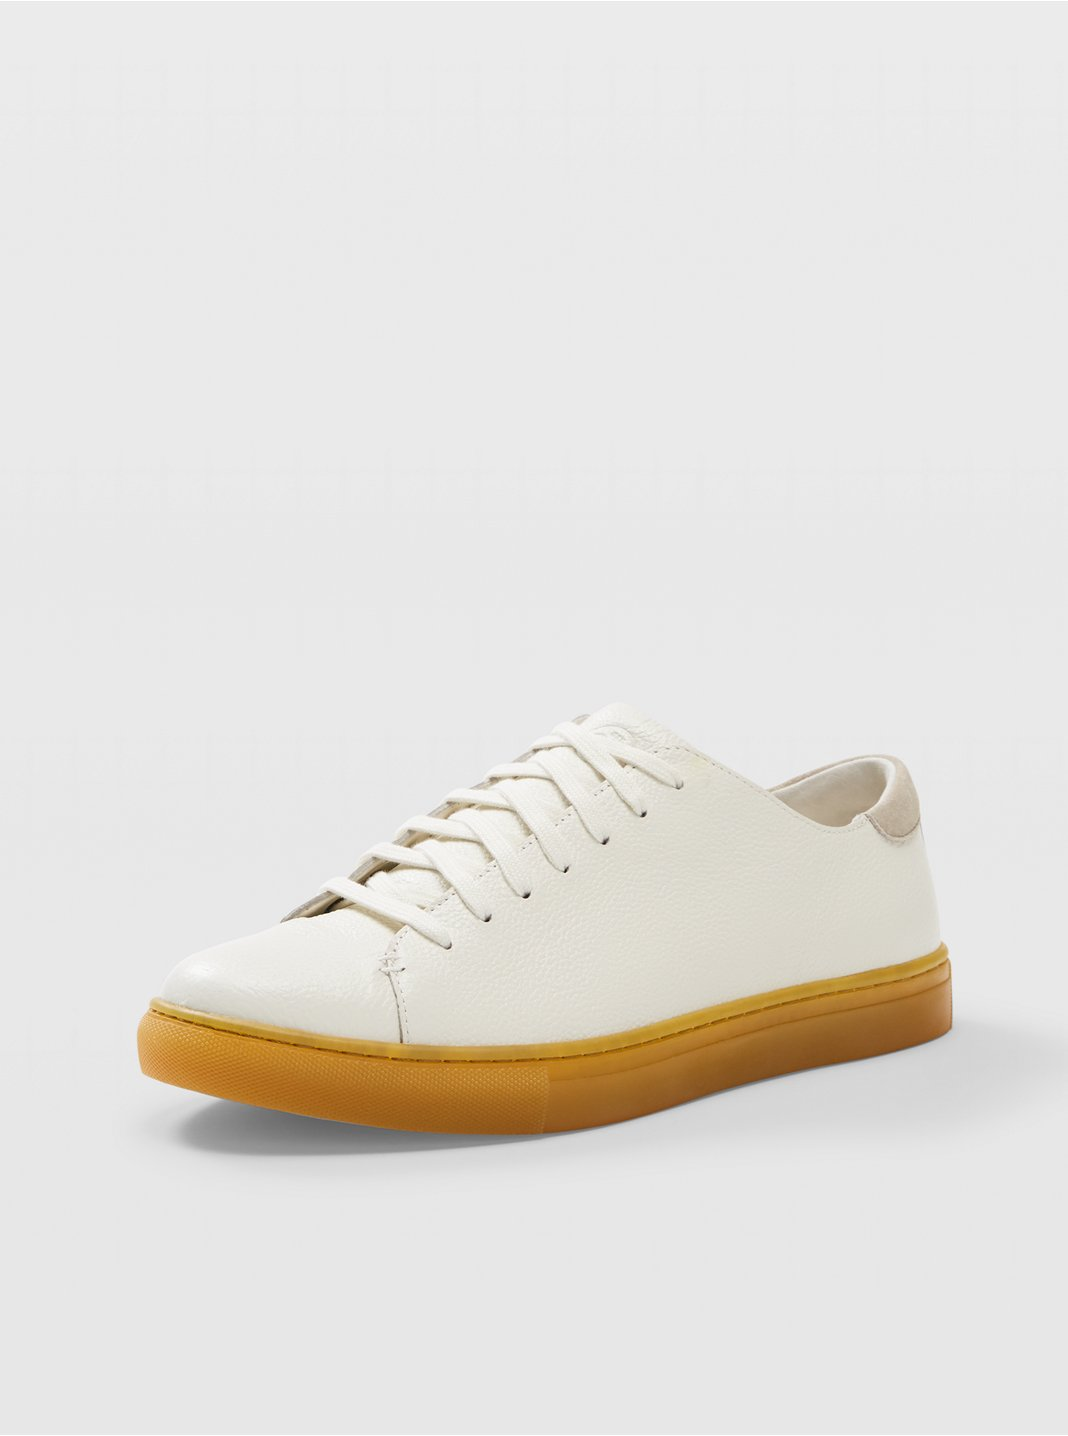 Club Monaco Gum Sole Sneaker